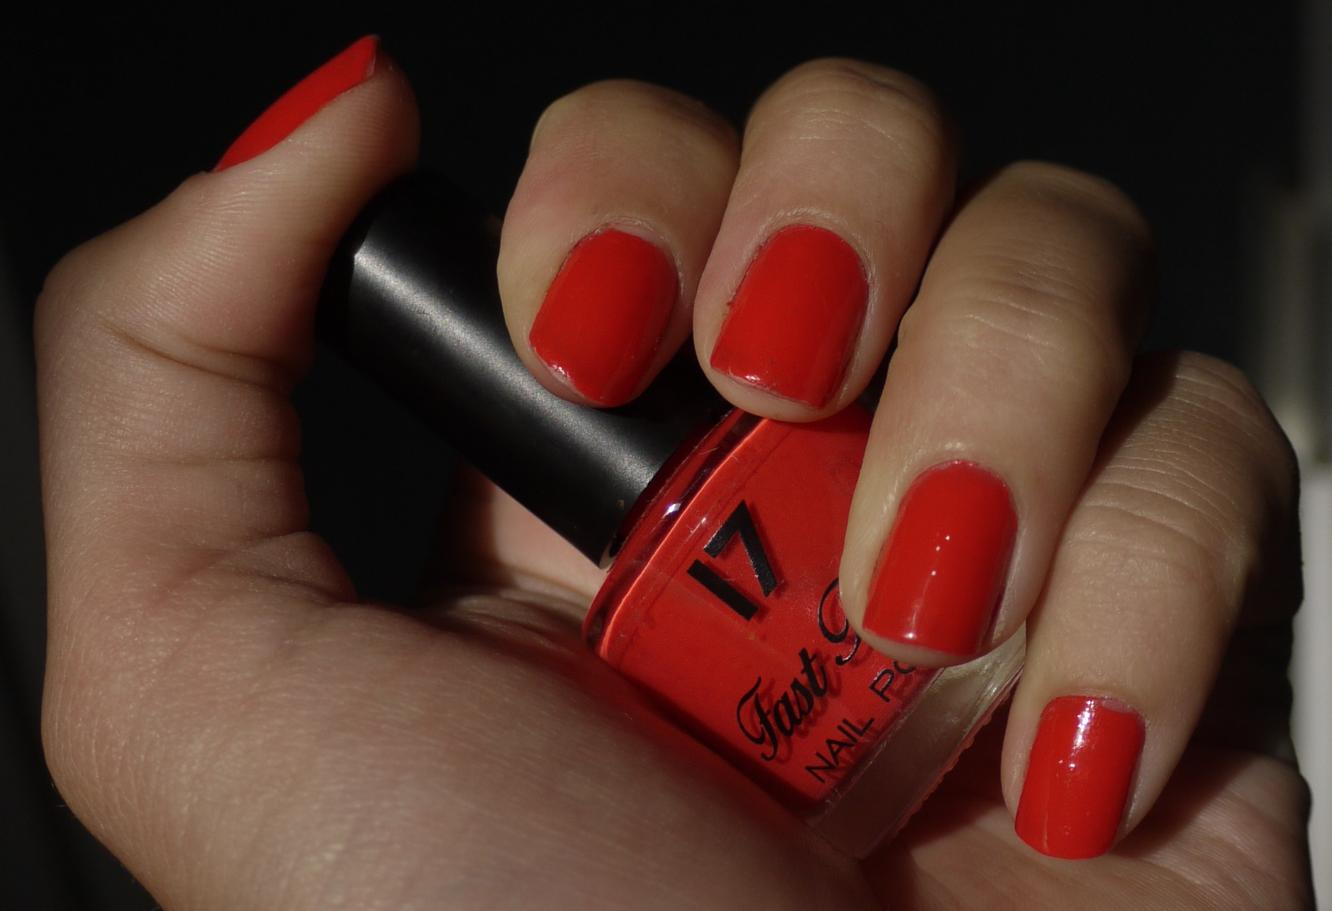 Beauty liberty mes ongles d t - Ongle d ete ...